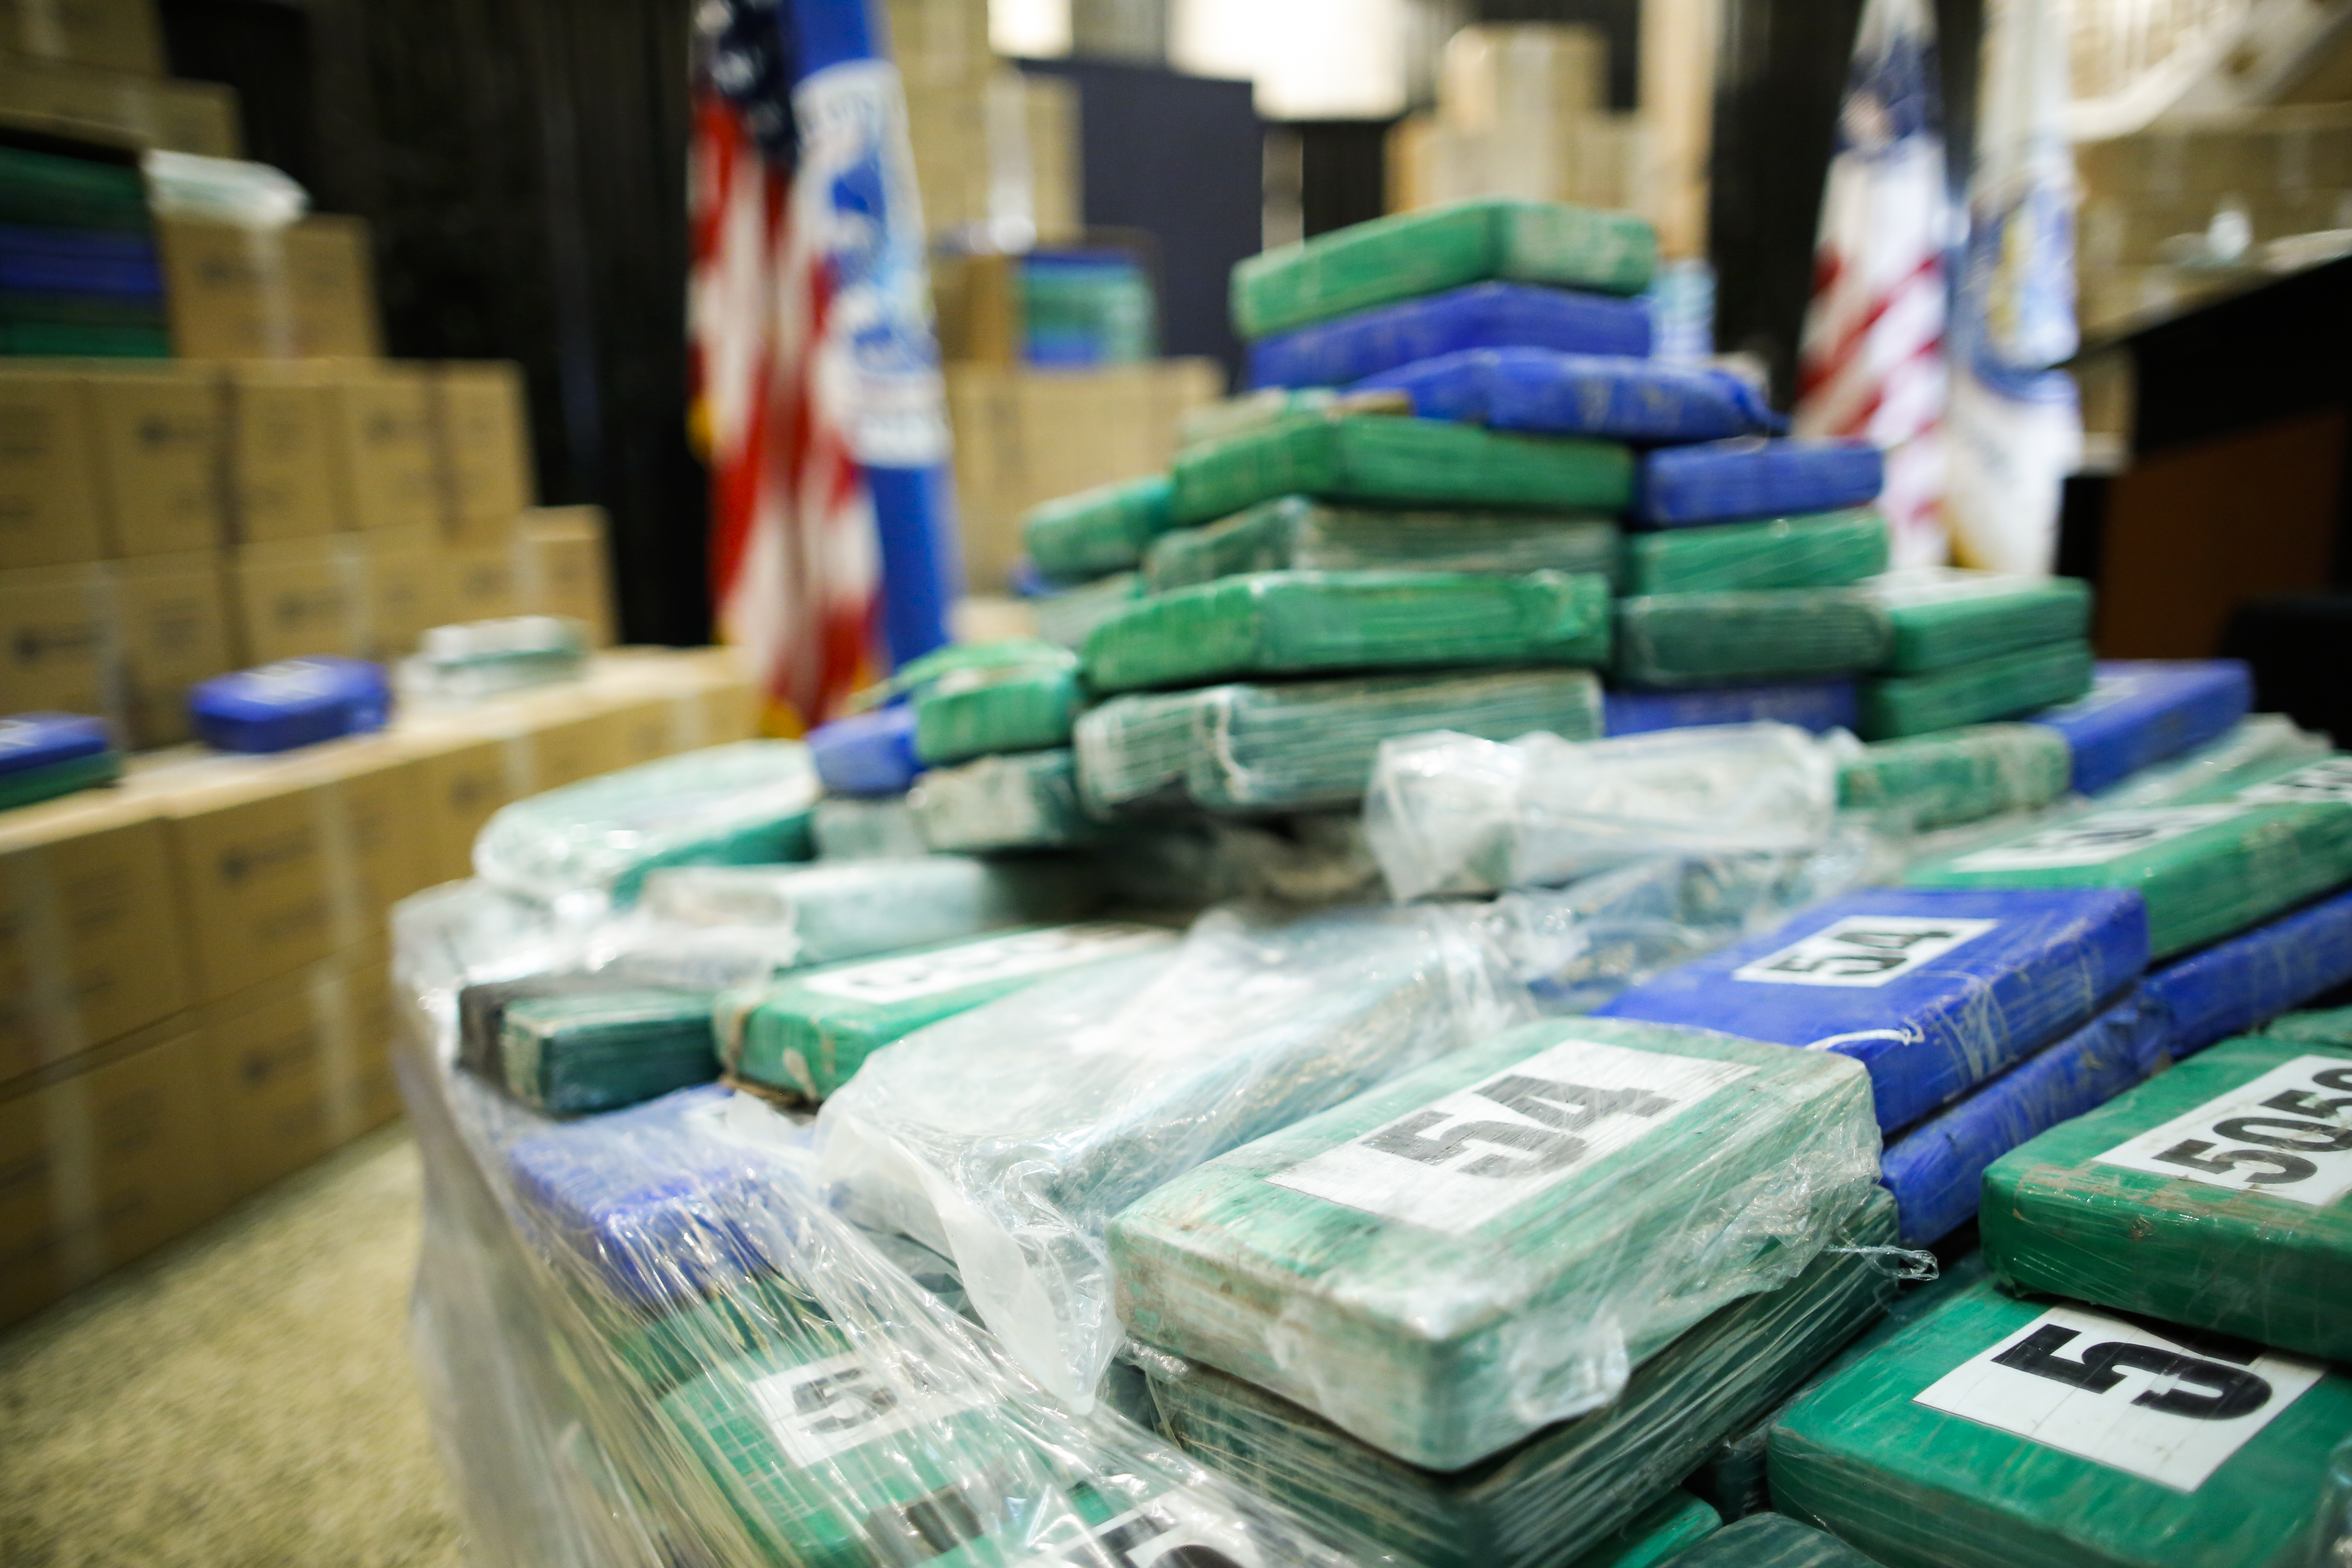 US Customs and Border Protection seized over 17.5 tons of cocaine worth more than $1 billion at a Philadelphia seaport. (Photo by Eduardo Munoz Alvarez/Getty Images)